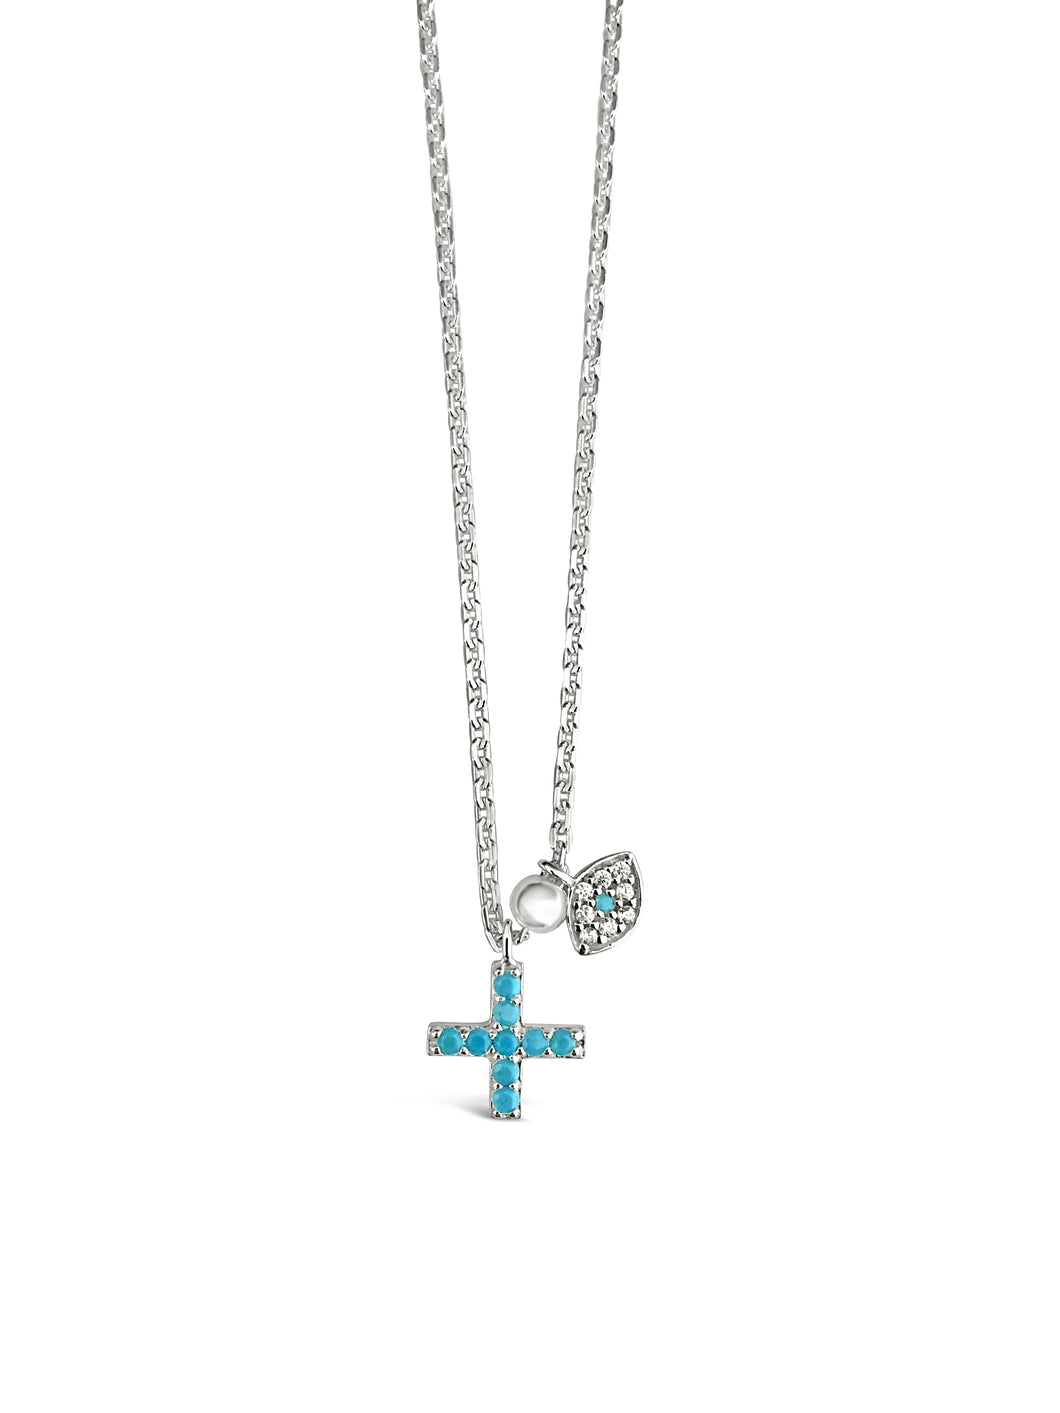 Faith & Belief necklace